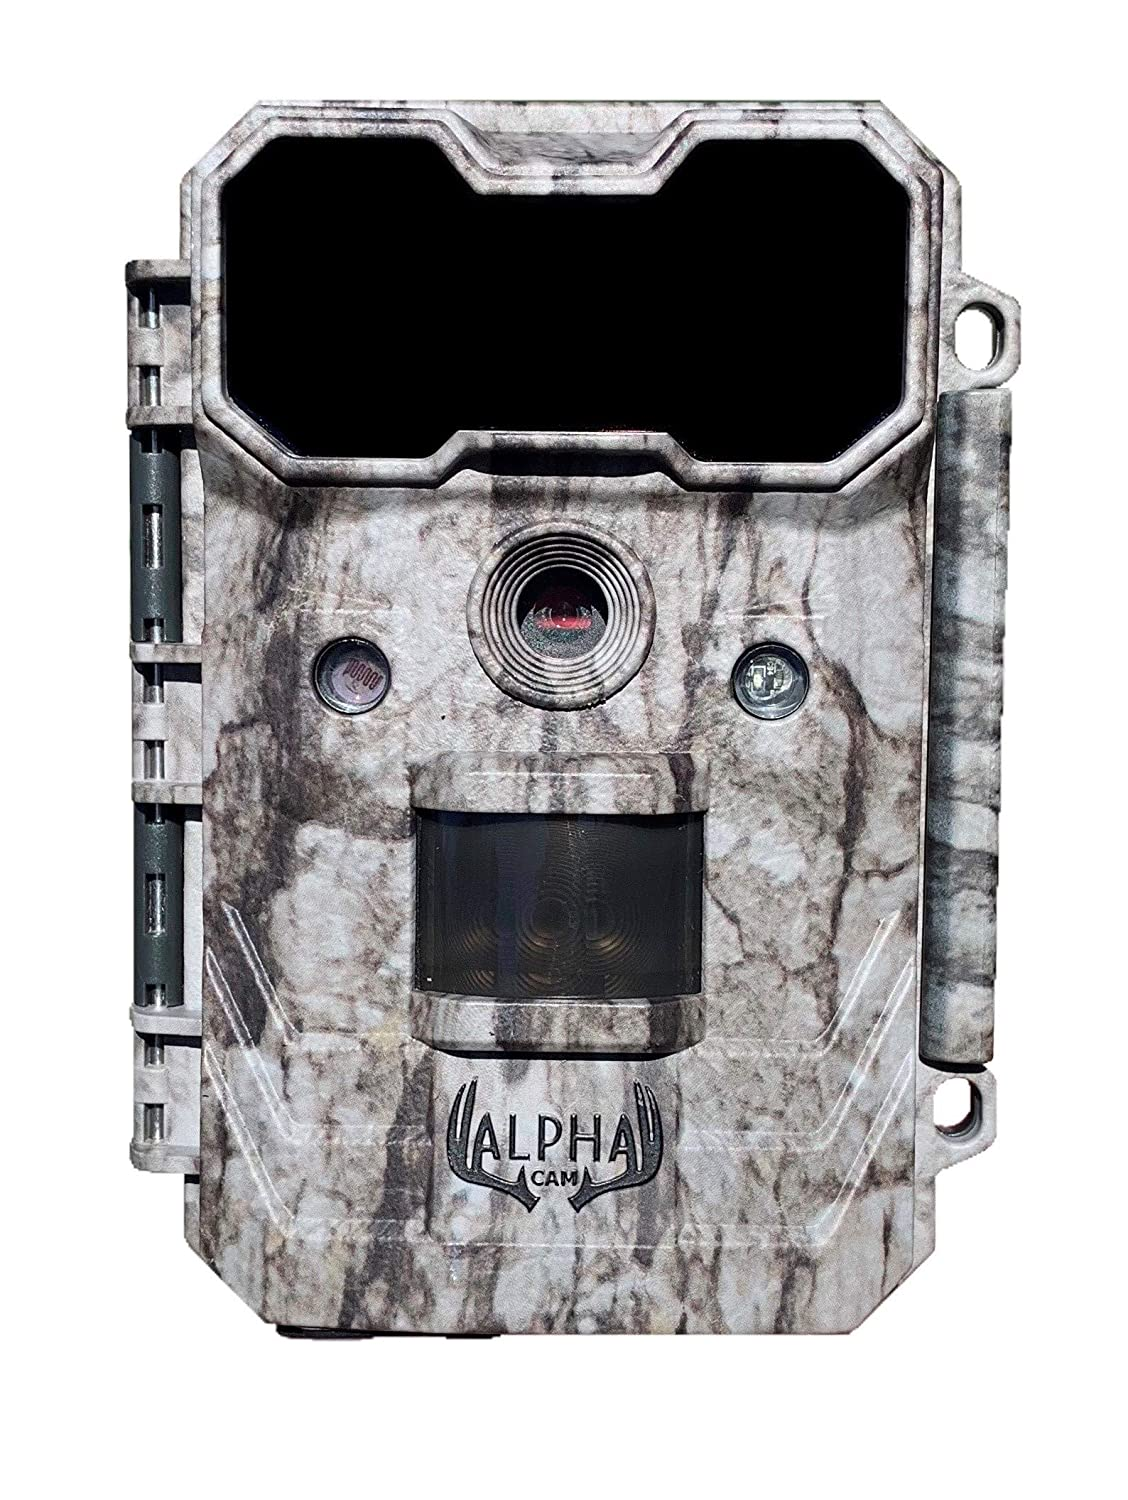 Alpha Cam Hunting Trail Camera 20MP 1080p 30fps Waterproof Scouting Cam with Ultra Fast Trigger Speed and Recovery Rate 2.4 Color Viewscreen 48 IR LEDs